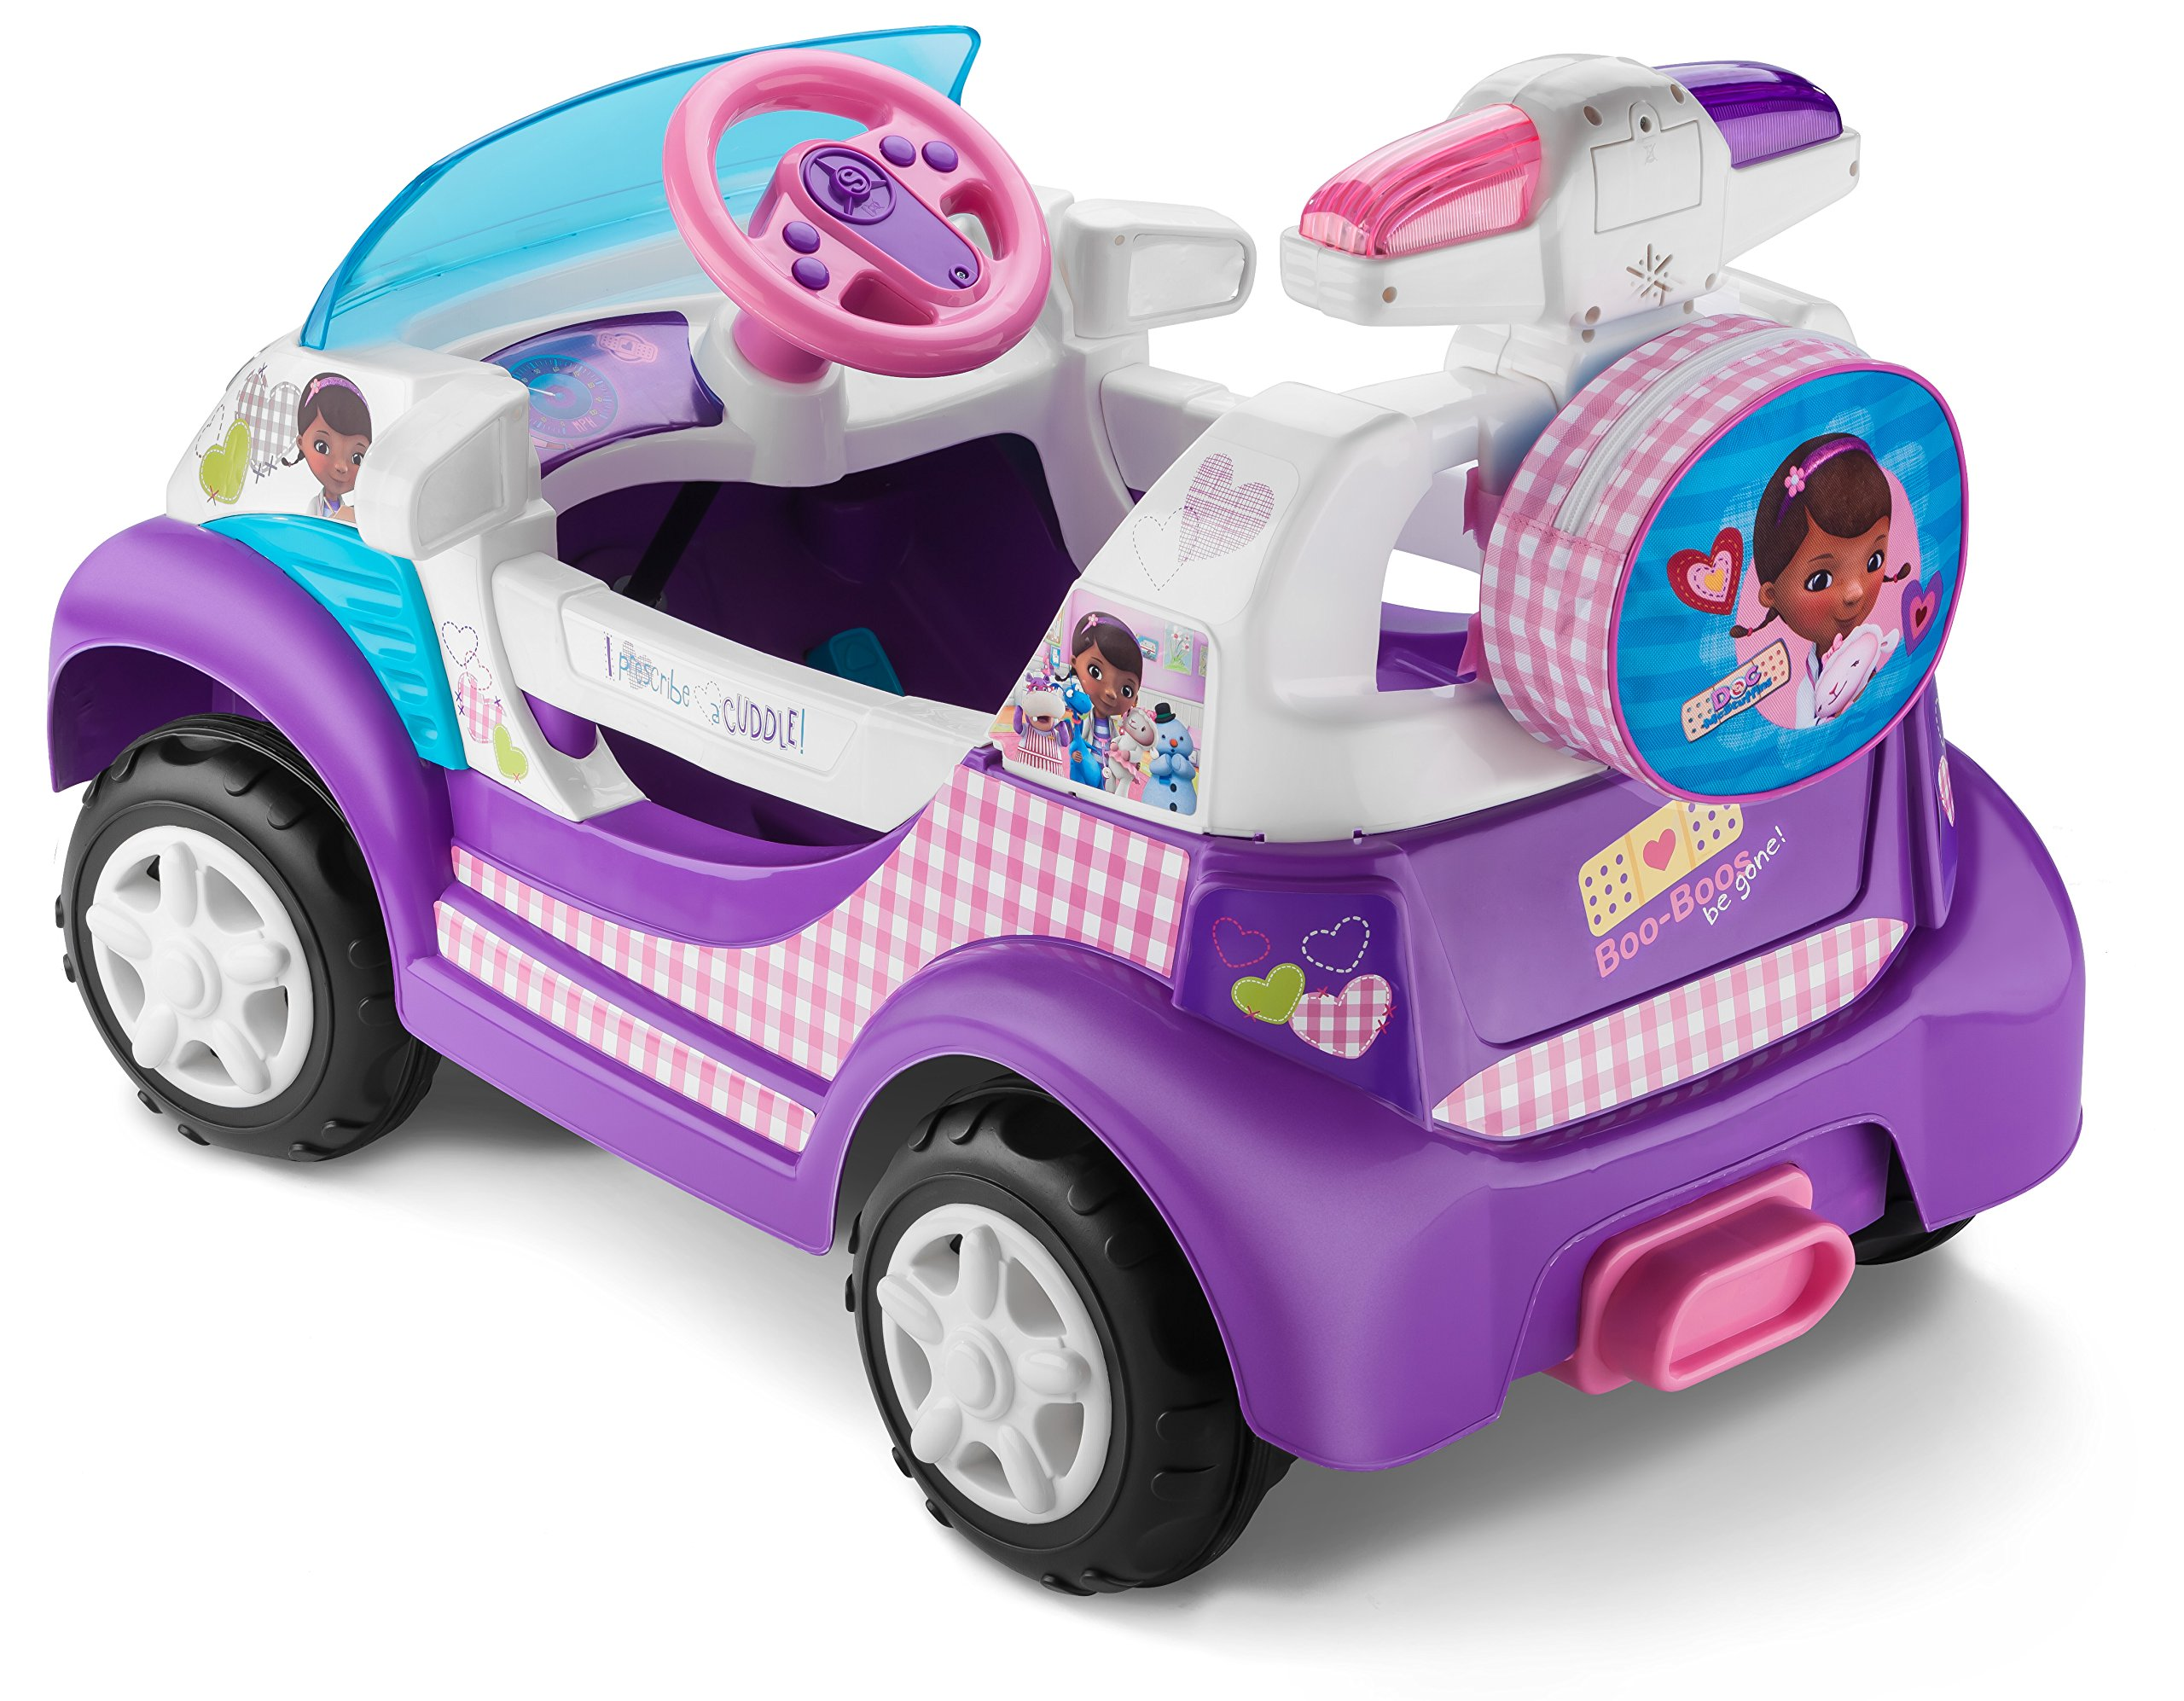 Kid Trax Doc McStuffins 6V Ambulance Ride On by Kid Trax (Image #3)